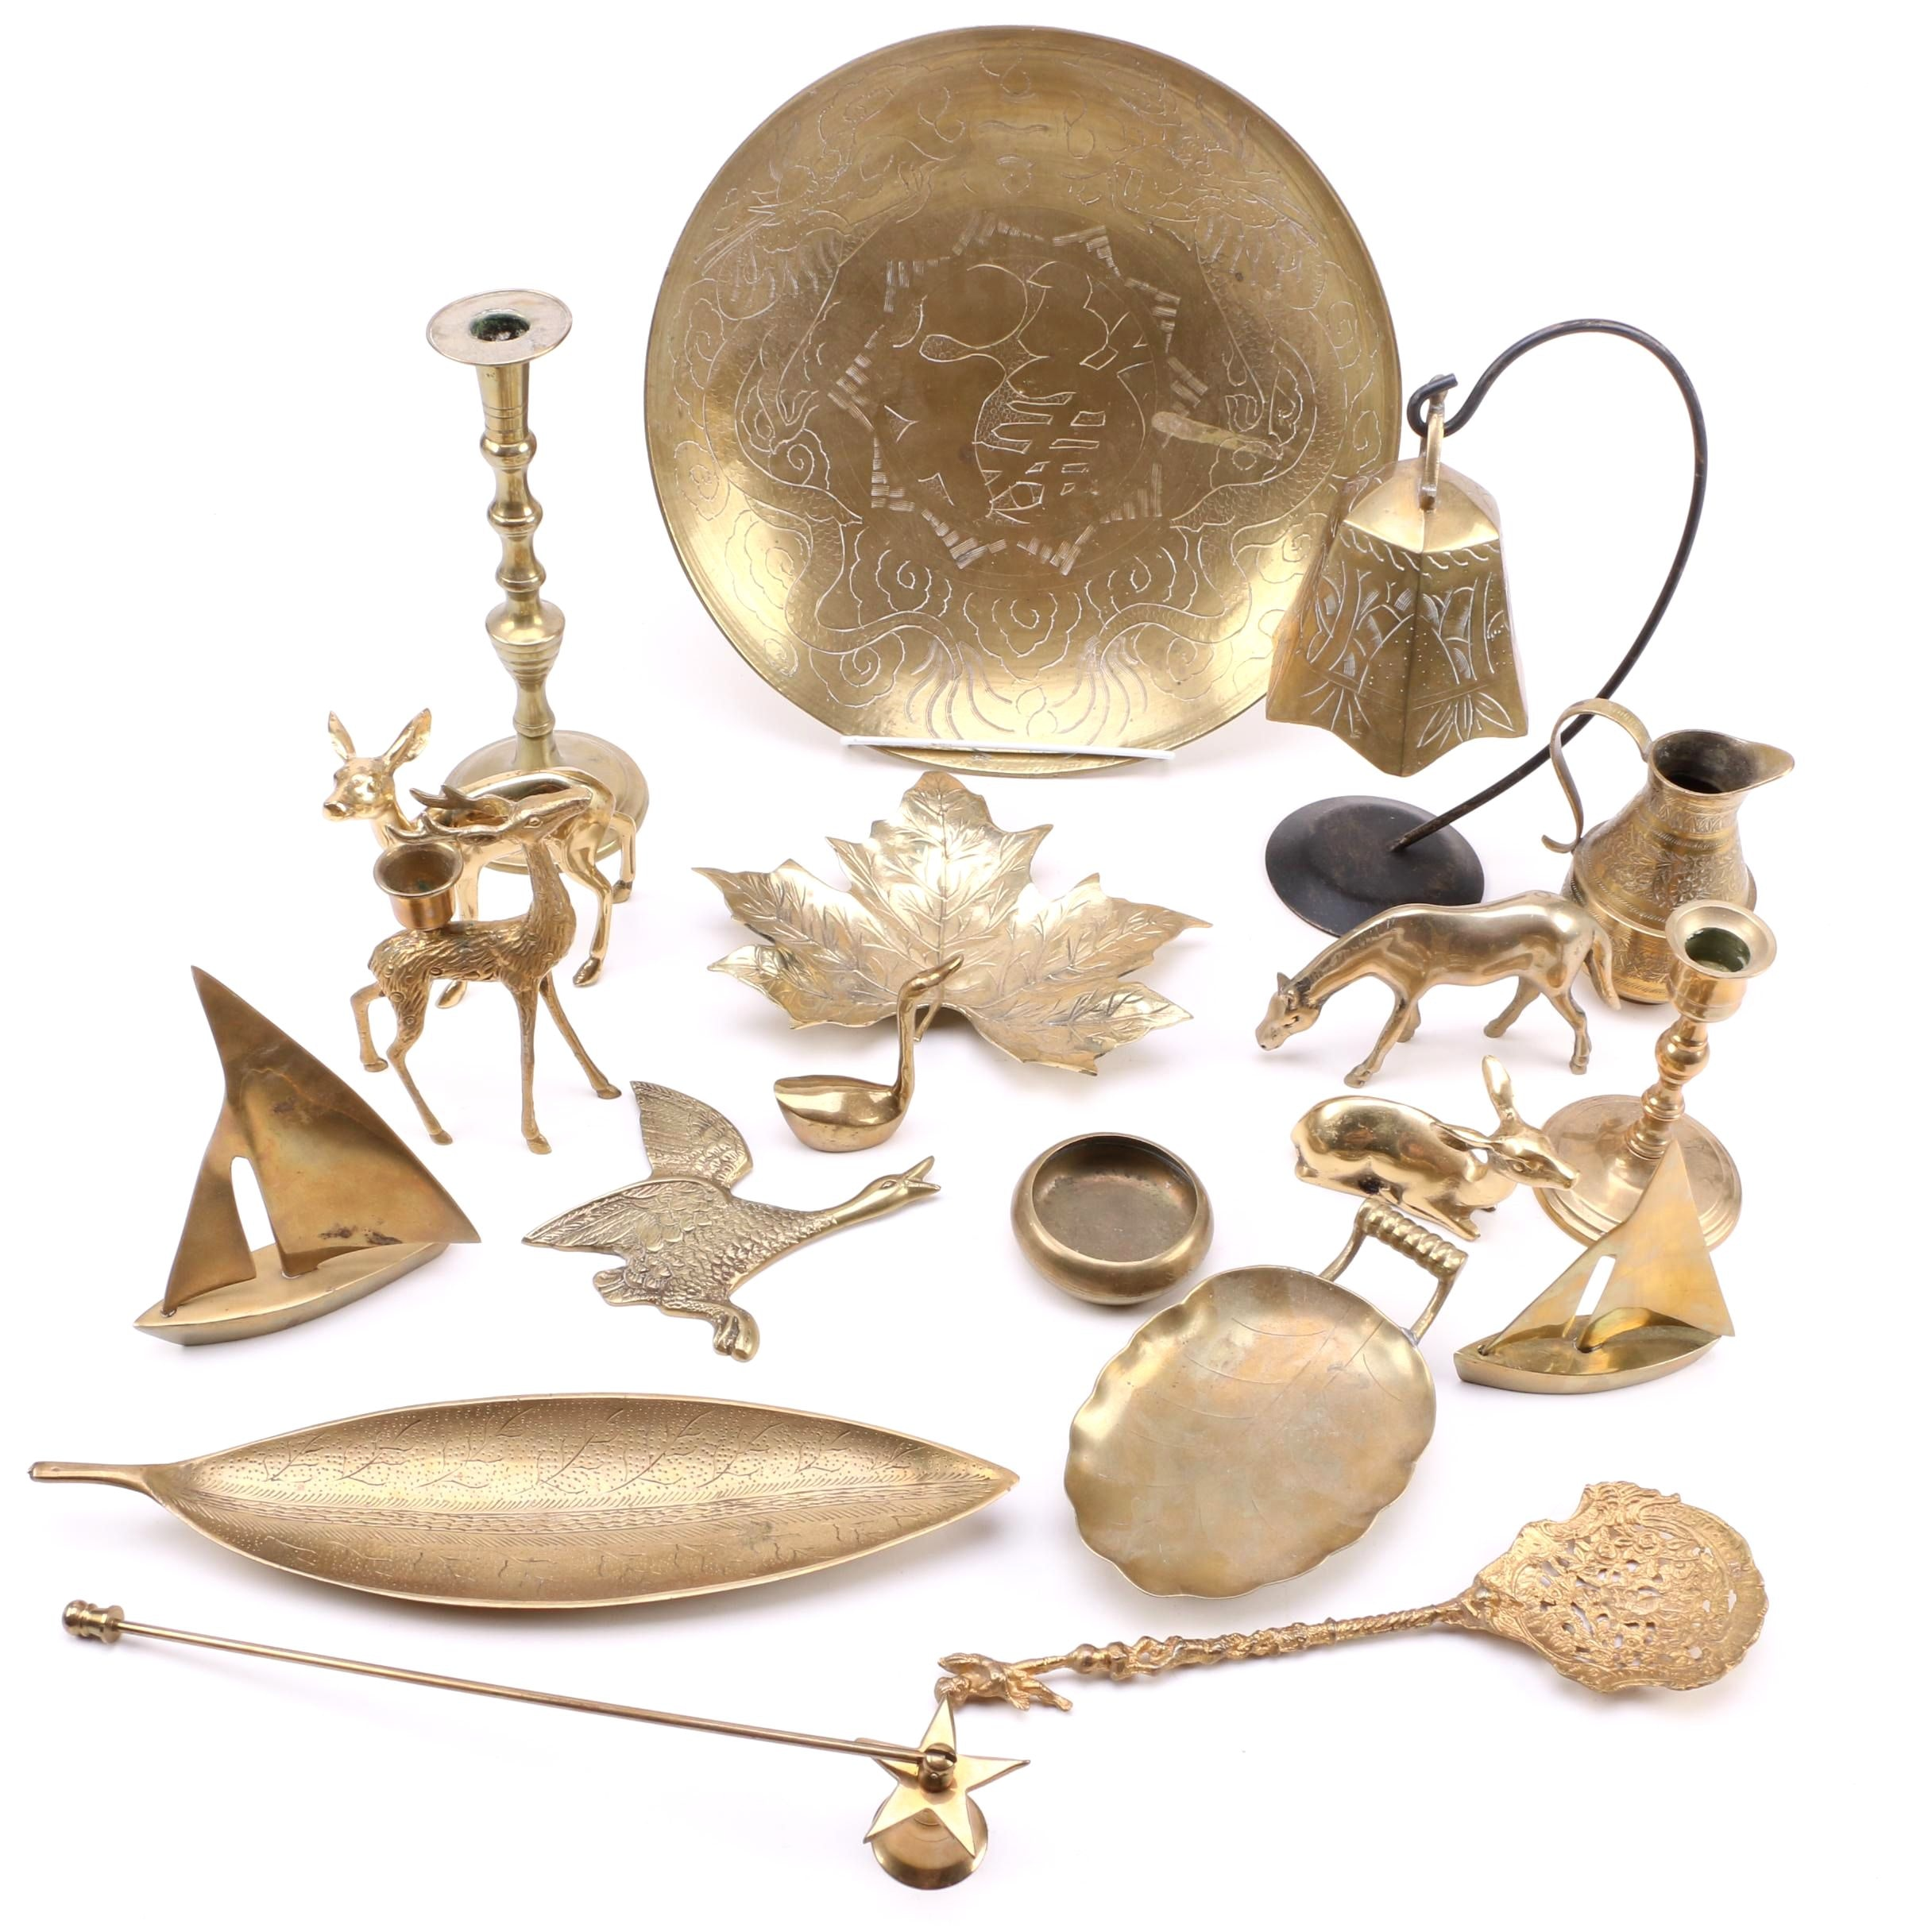 Brass Figurines and Décor